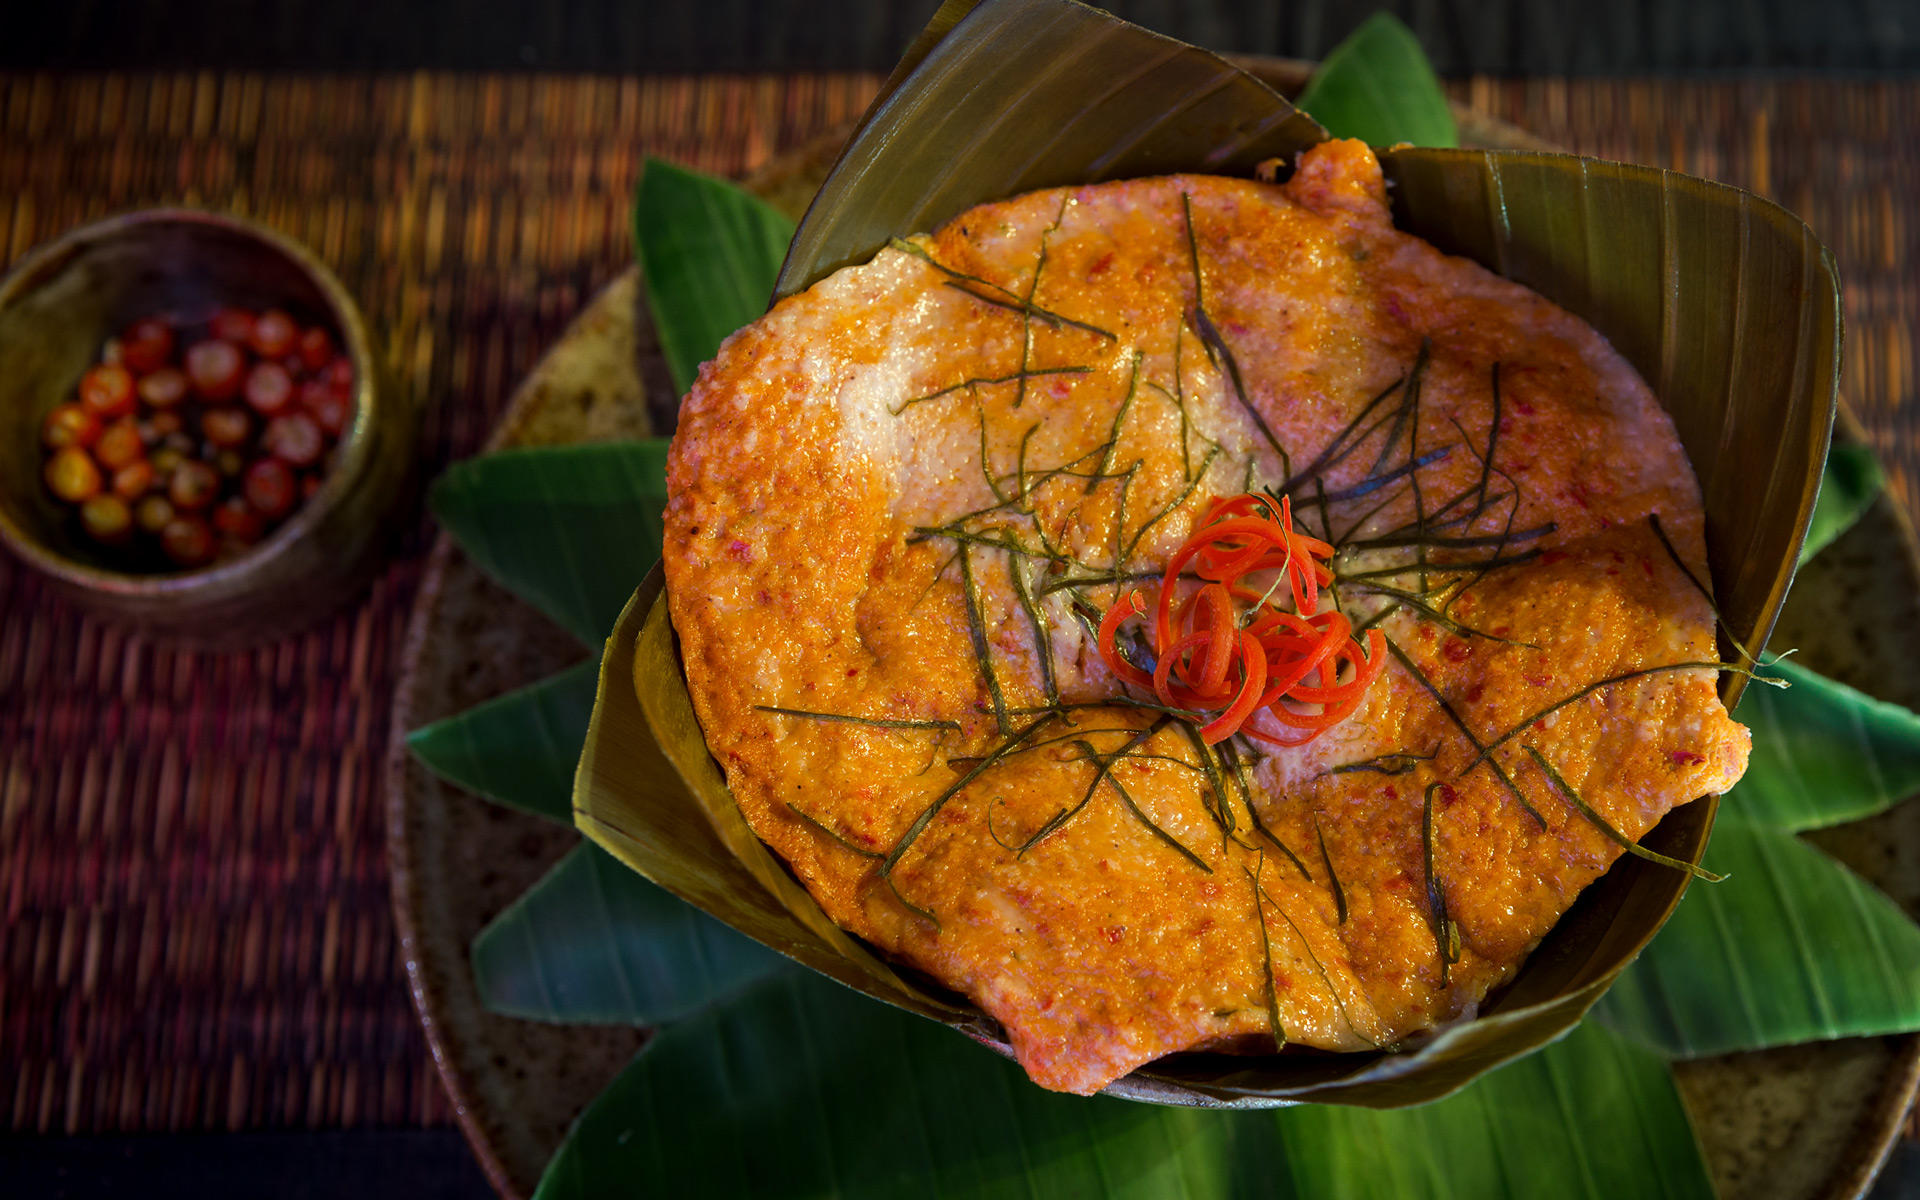 Fish Amok. The Sugar Palm Restaurant & Bar. Authentic Cambodian food by chef Kethana with locations in Phnom Penh & Siem Reap, Cambodia.